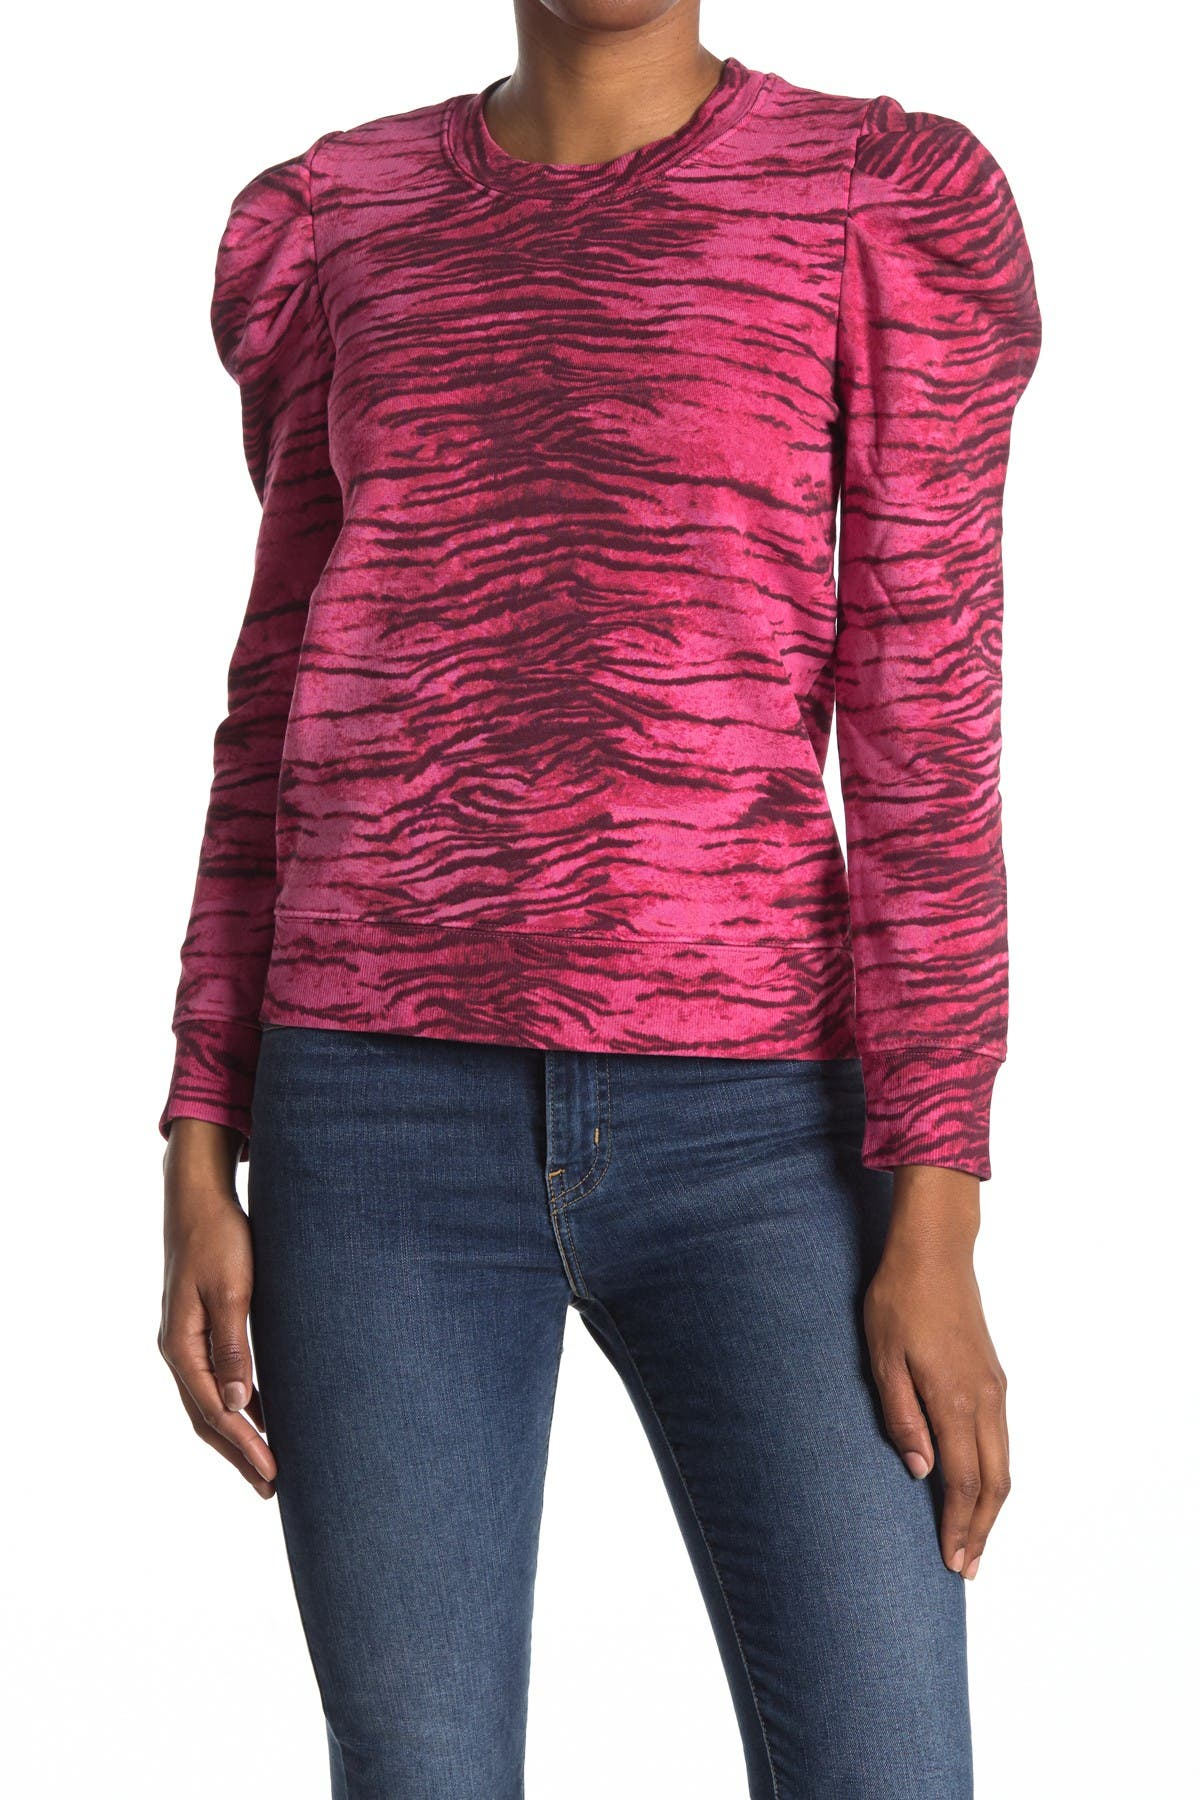 Image of PAM AND GELA Tiger Stripe Pullover Sweater